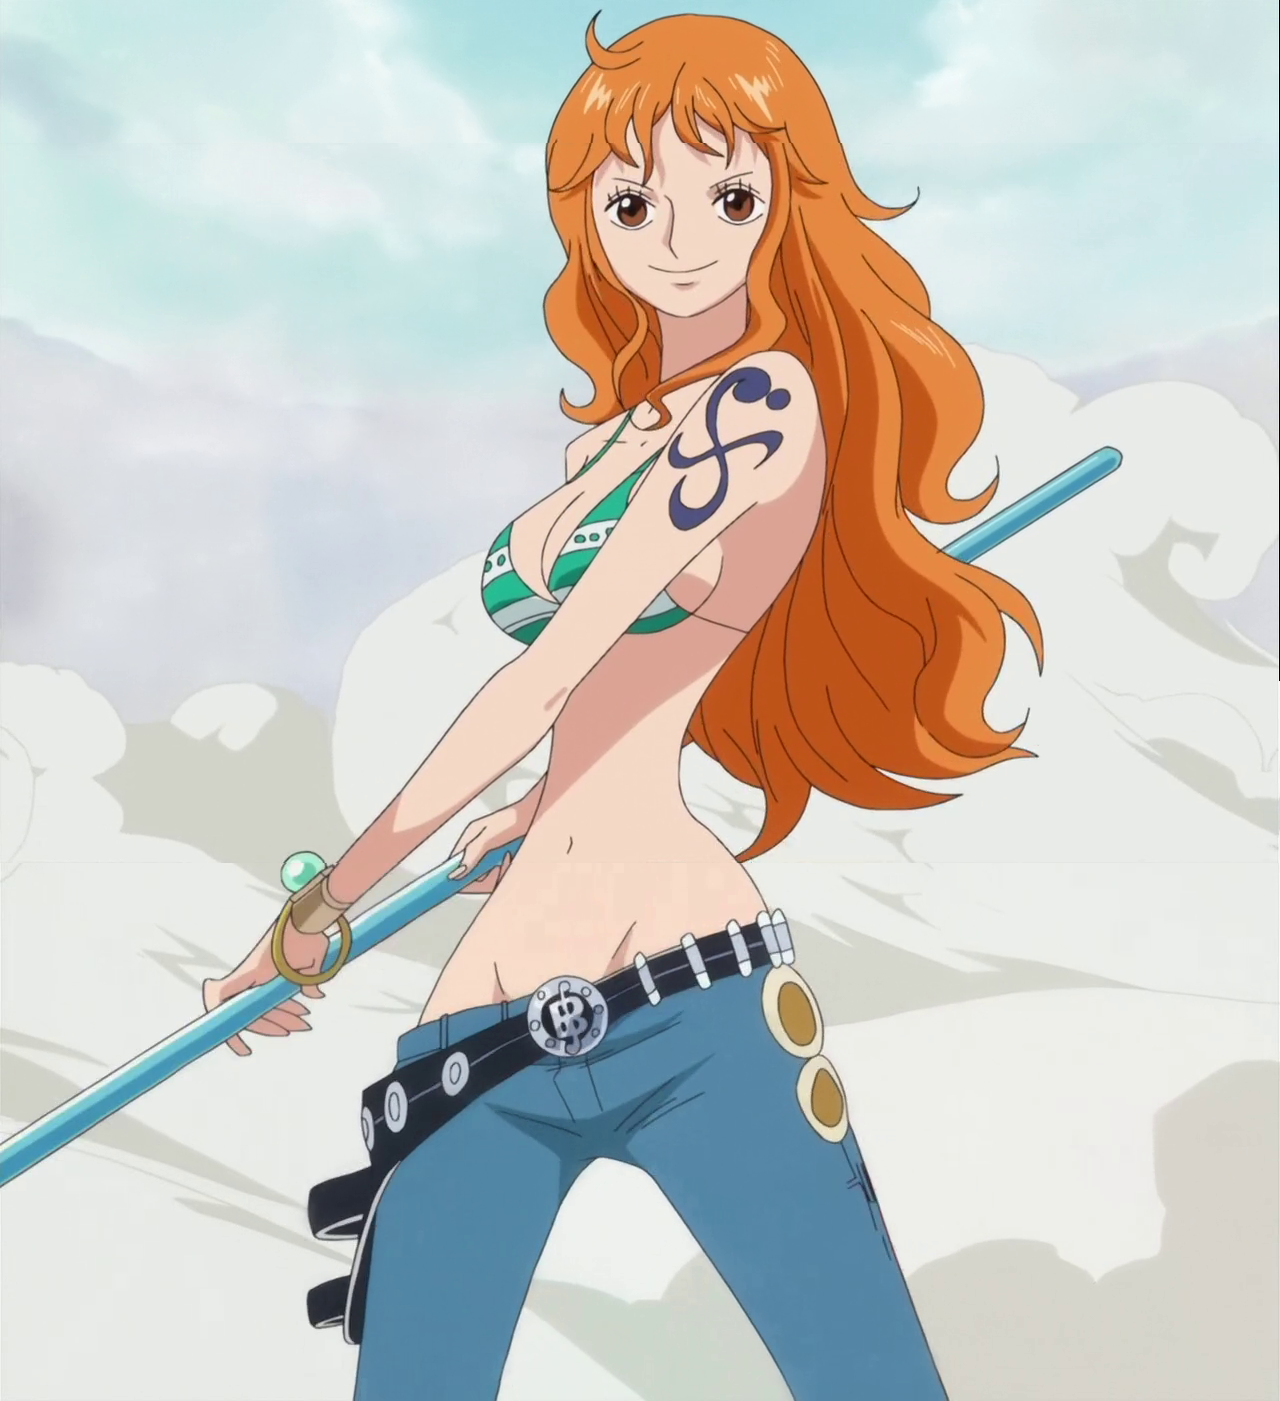 Nami Mirage Tempo Nami One Piece 1280x1401 Download Hd Wallpaper Wallpapertip